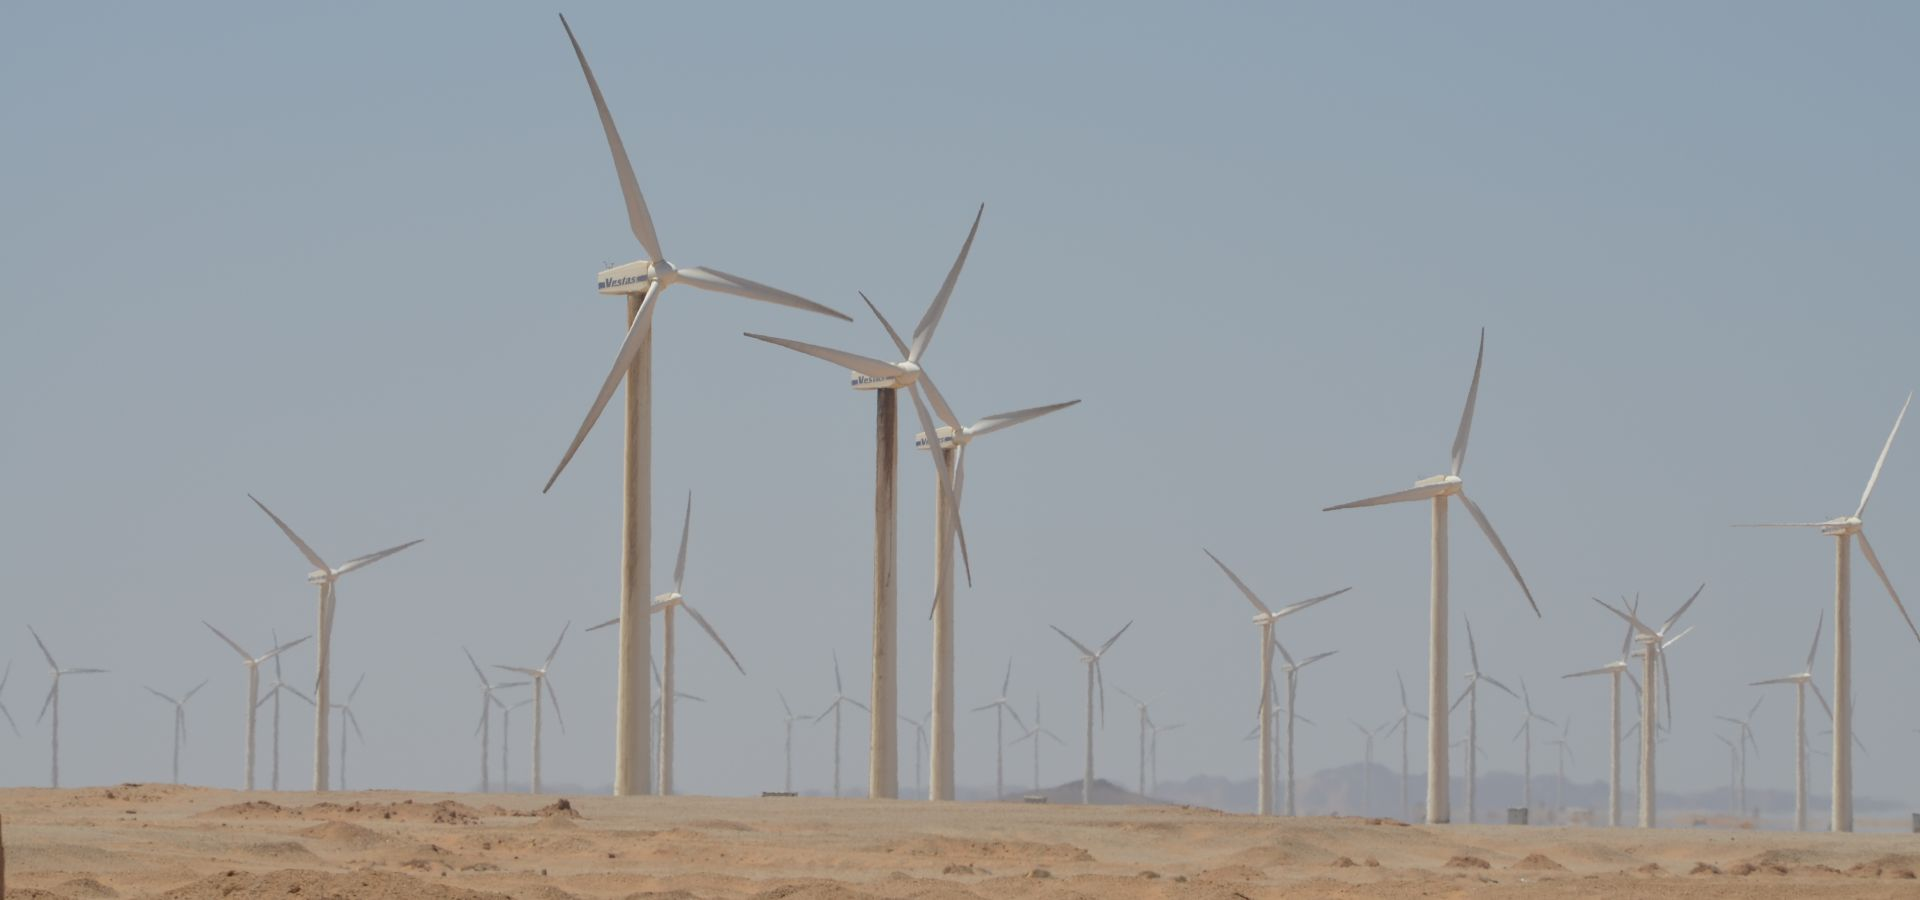 Wind turbine at Zaafarana Egypt by Hatem Moushir